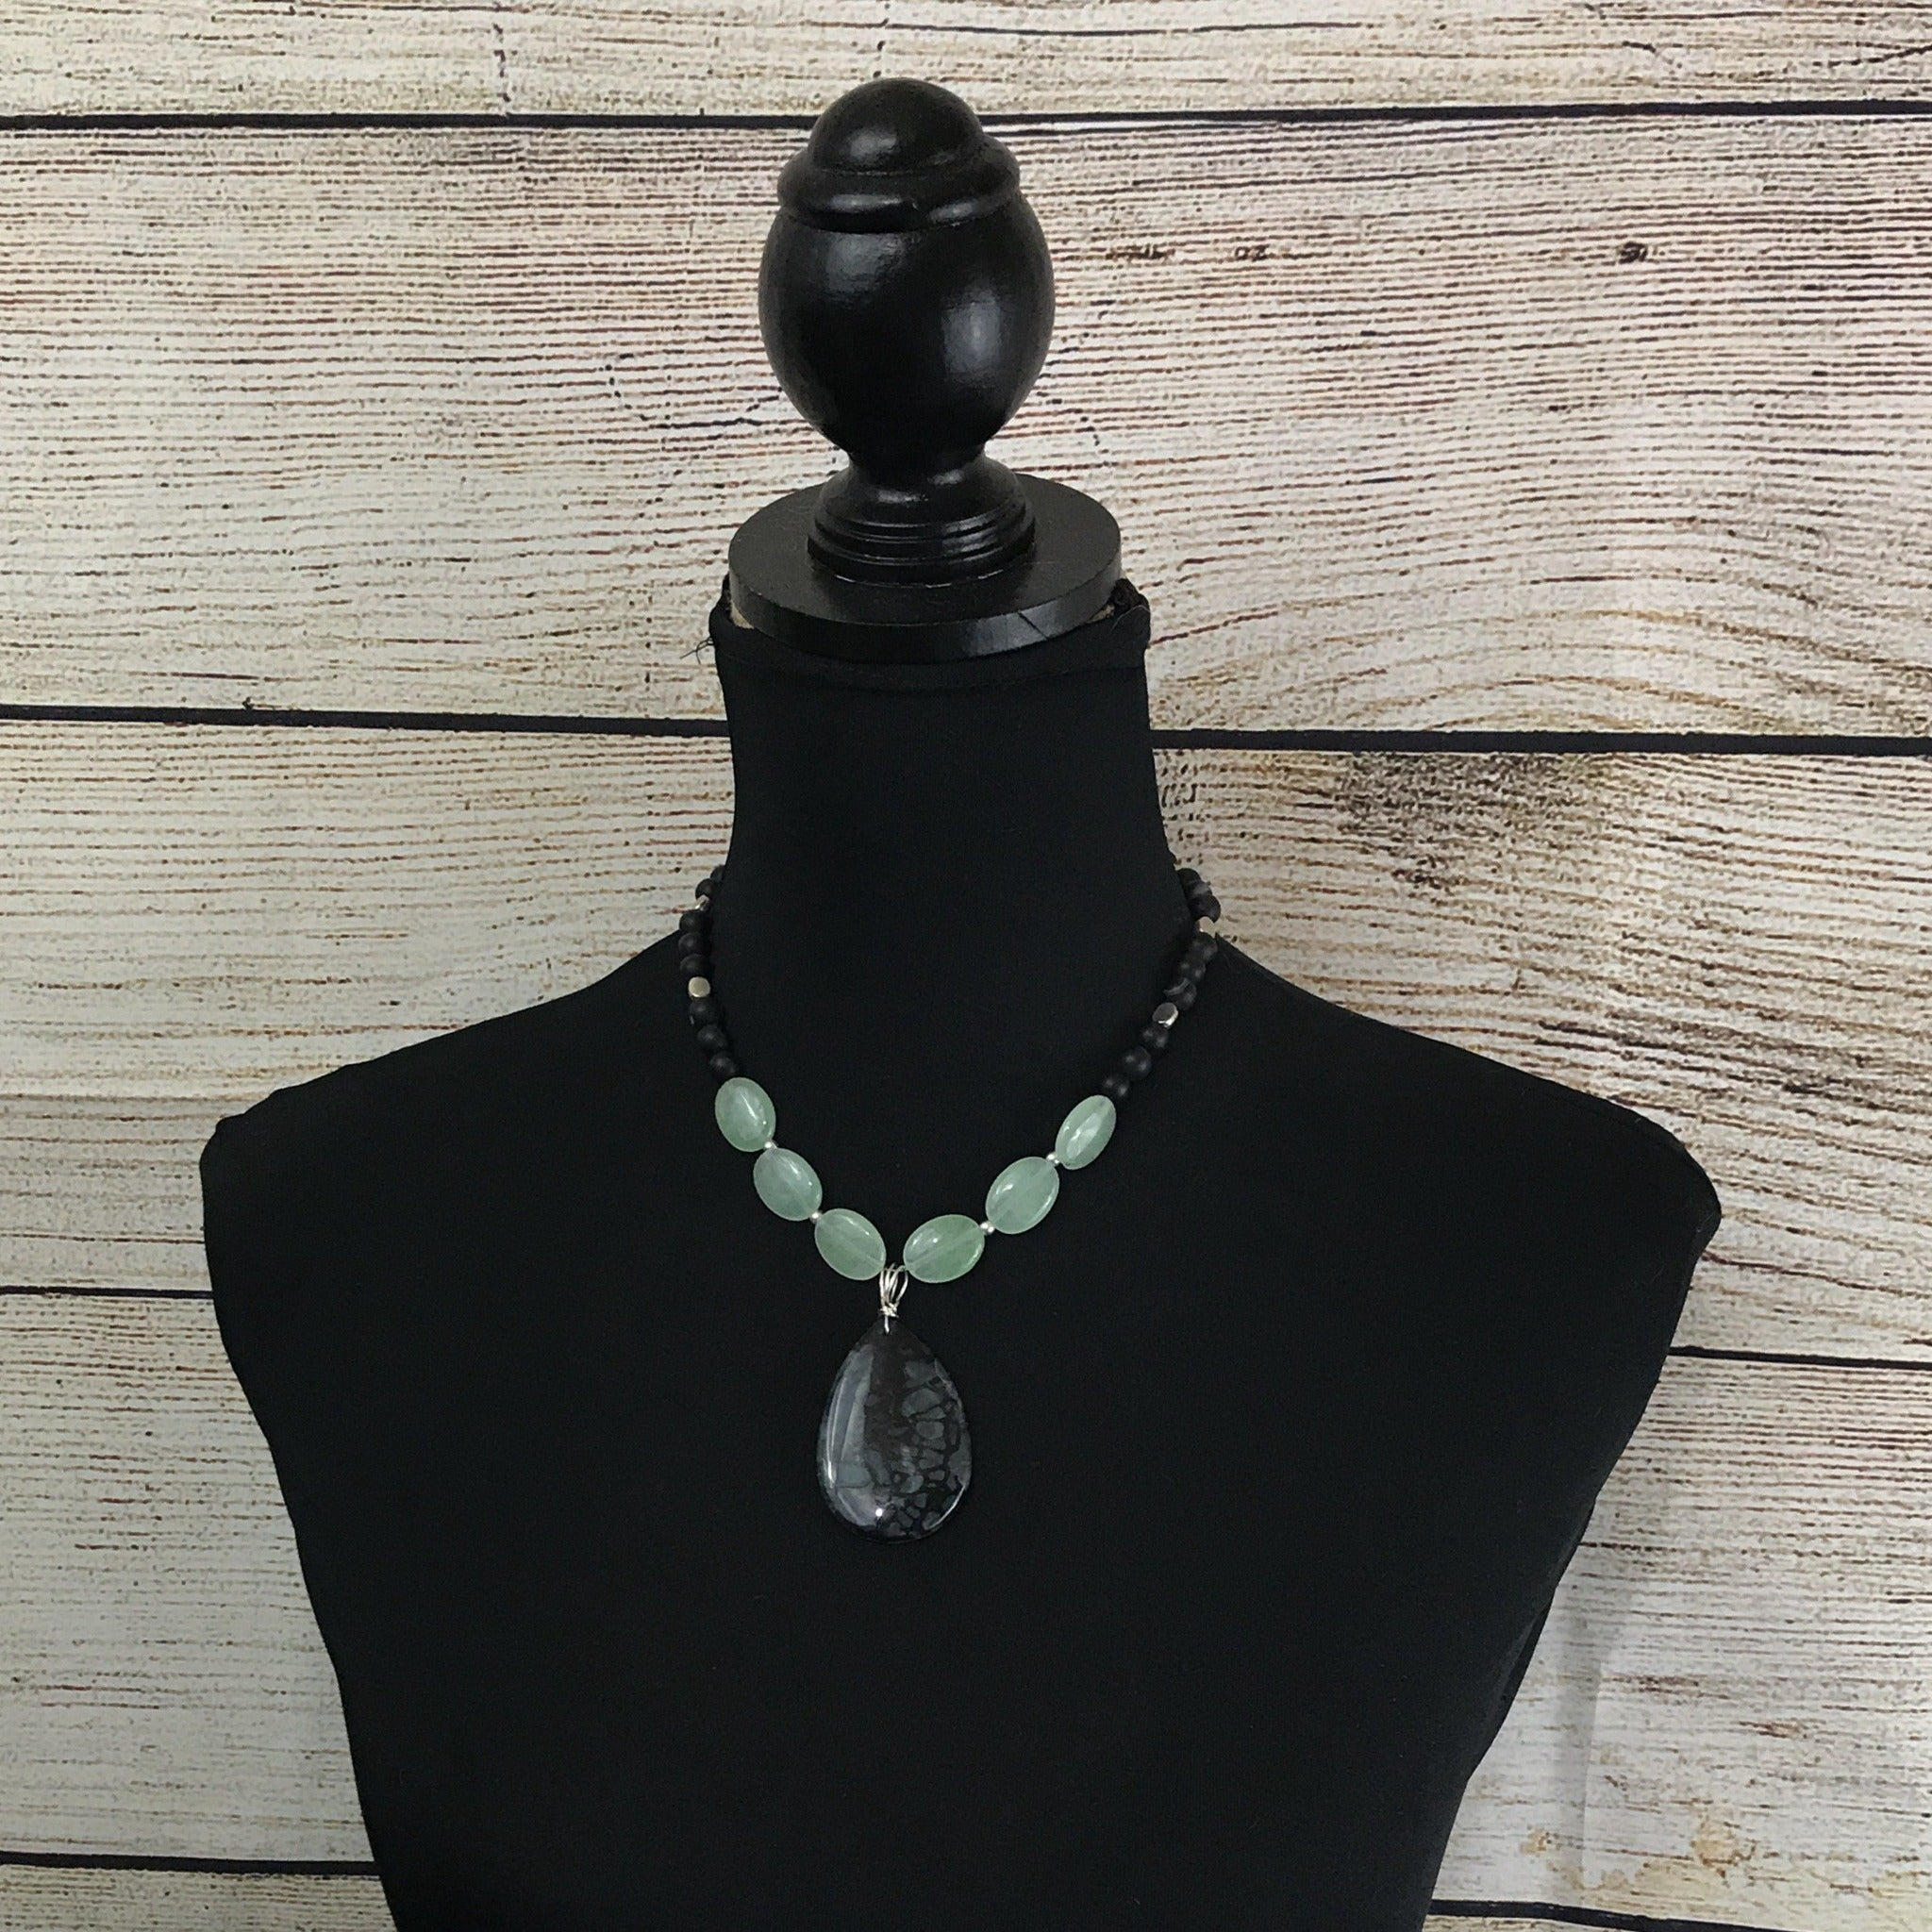 green round beads, black round beads, black faceted pendant with silver tone trim, double strand necklace